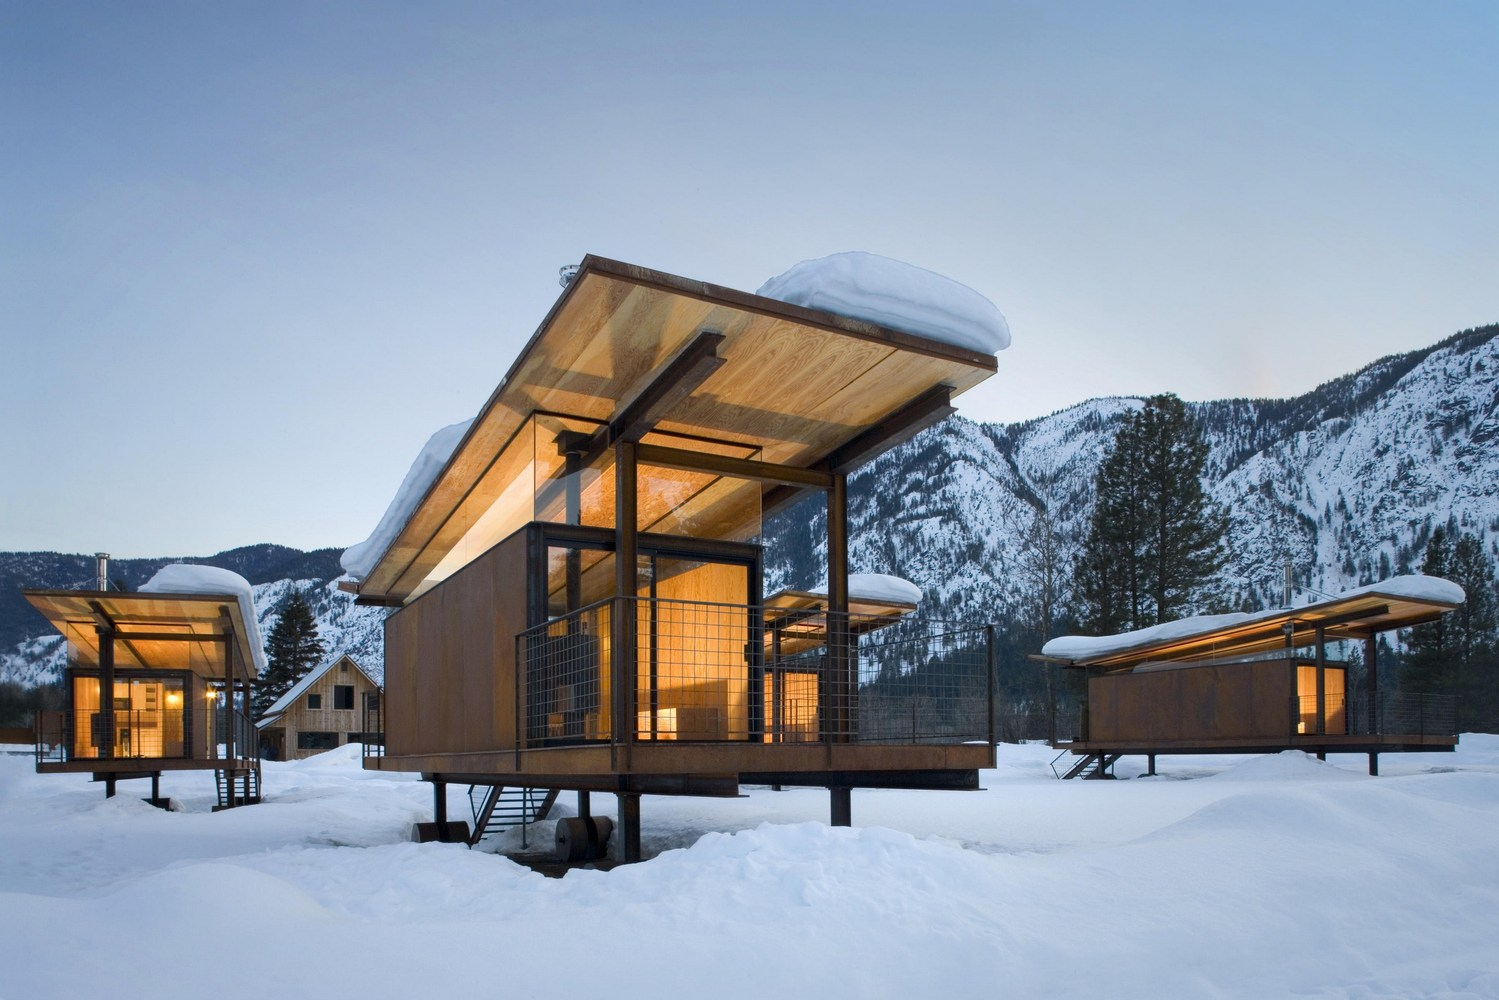 cozy wood hut design ideas